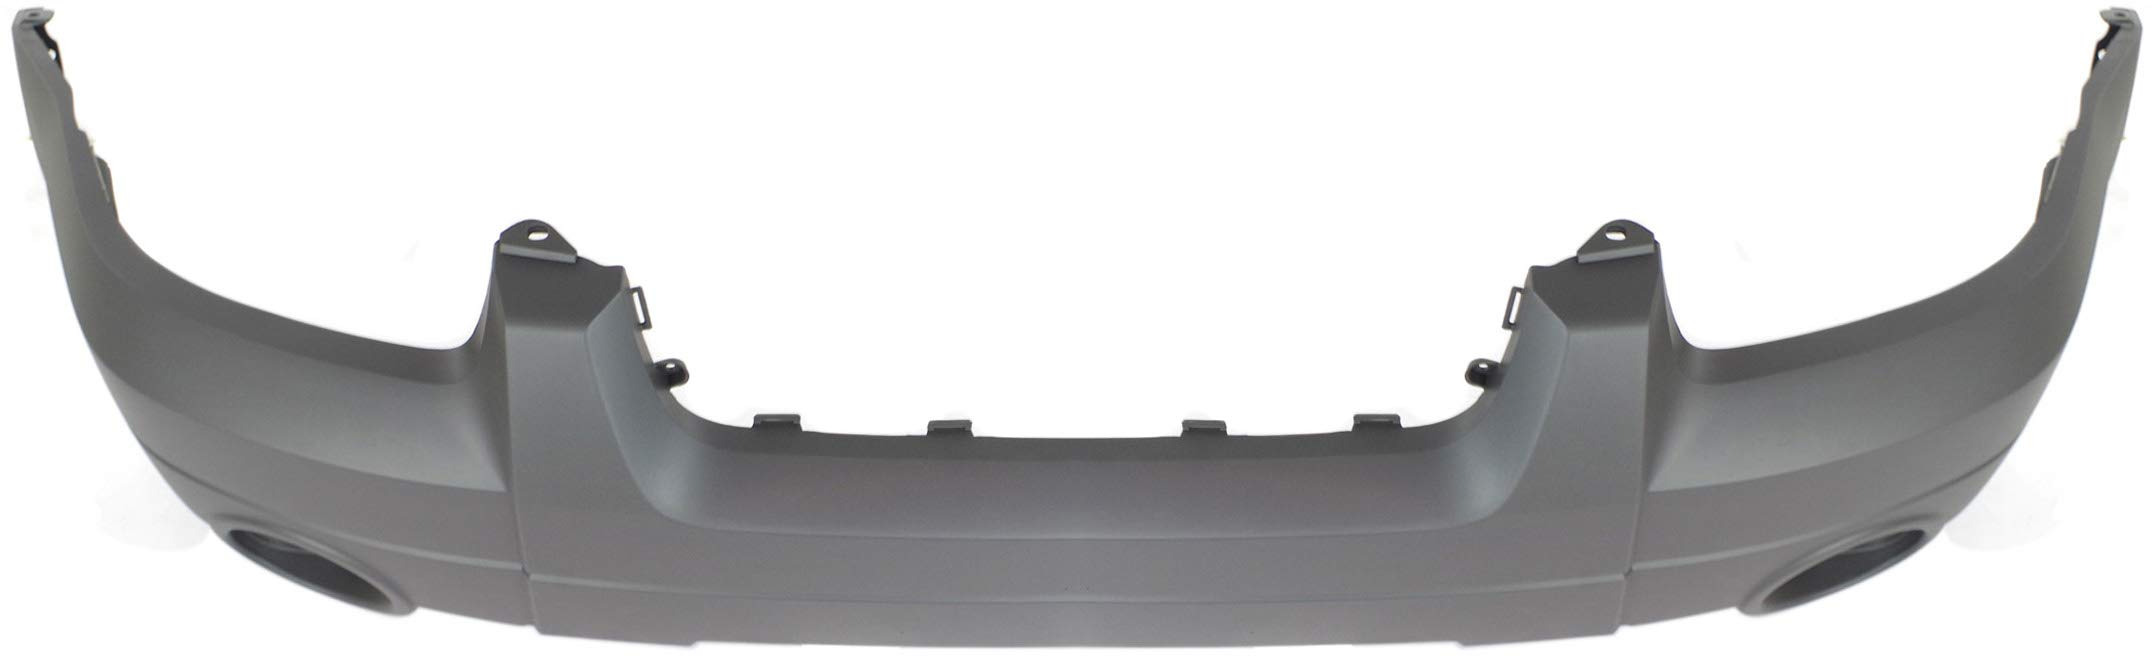 Clipsandfasteners Inc 25 Bumper Cover Push-Type Retainers For Ford Escape